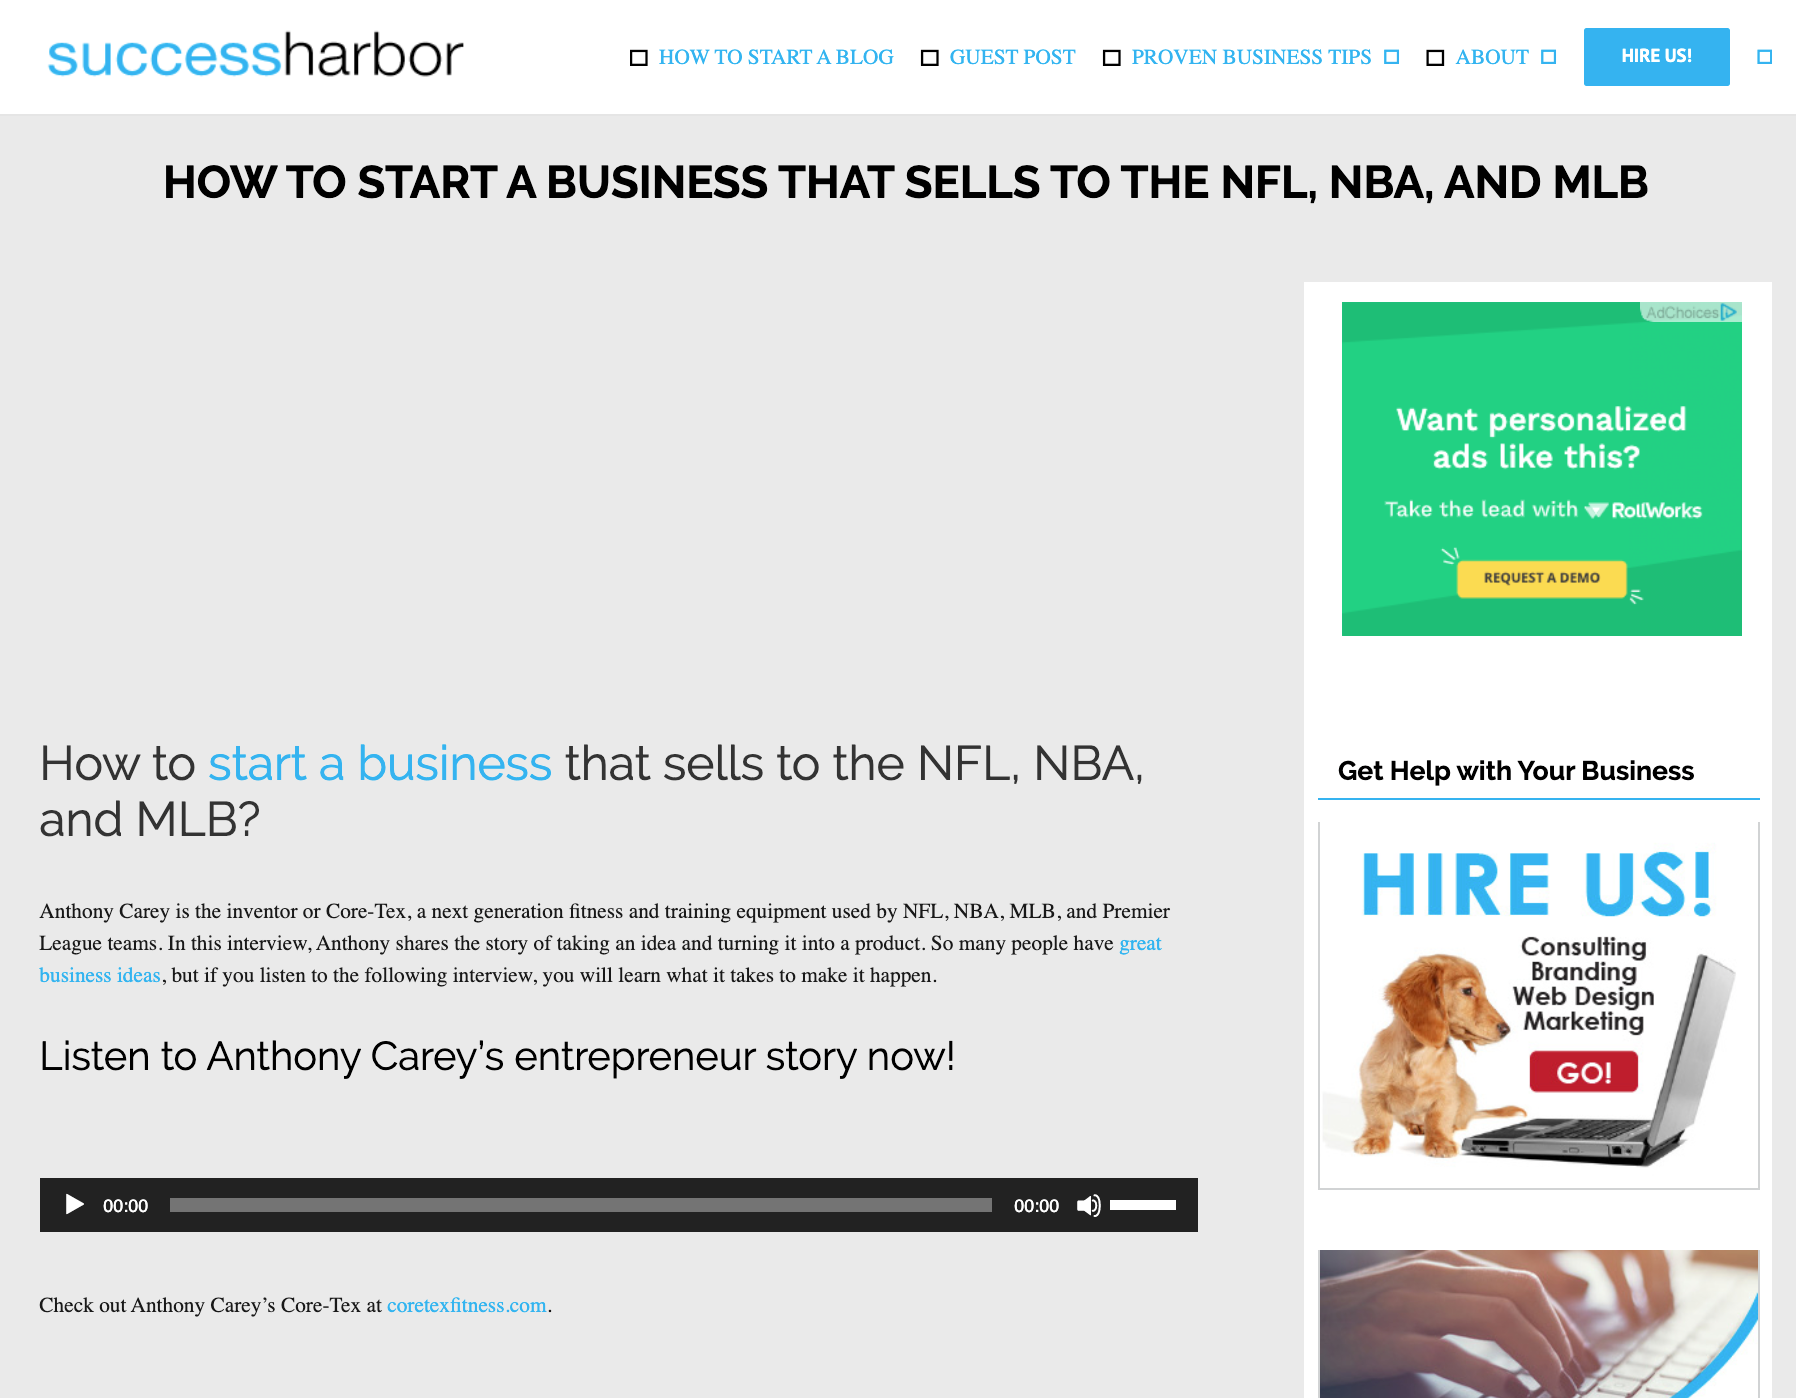 SUCCESSHARBOR.COM PODCAST WITH GEARGE MESZAROS, MAY 15, 2014: How To Get NFL MLB NBA And Premier League Teams Buy Your Product with Anthony Carey